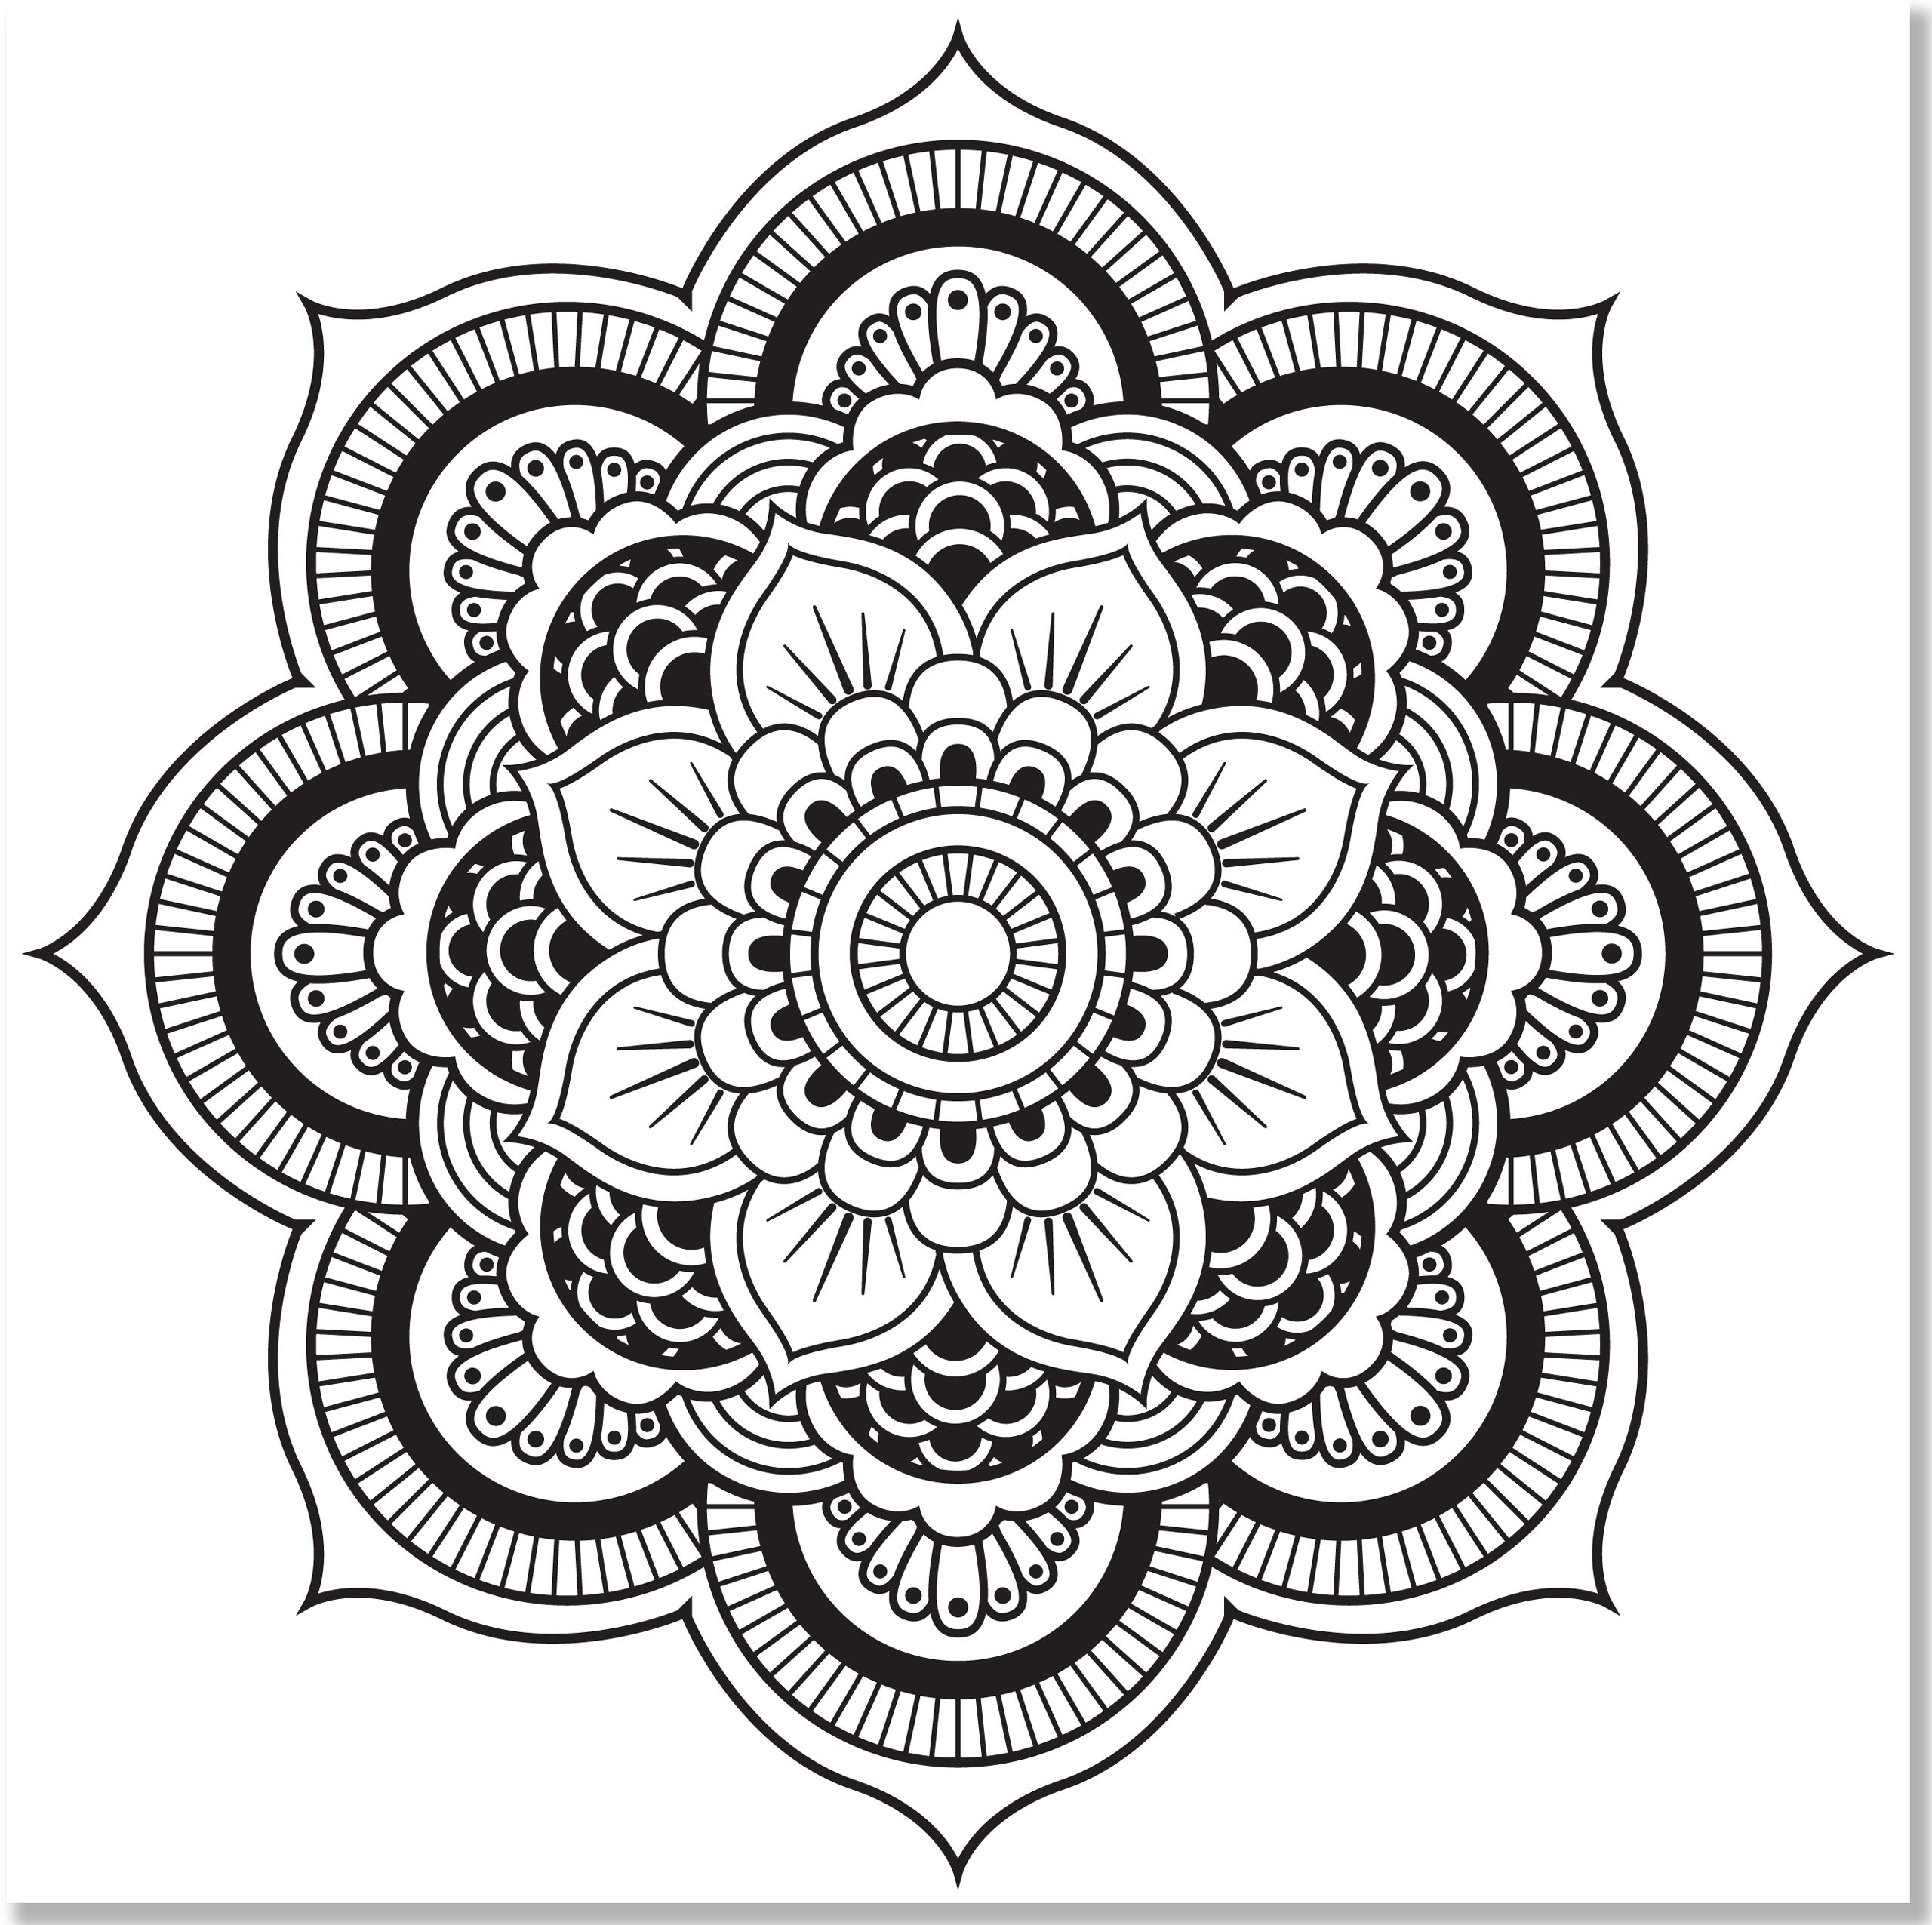 Stress relieving coloring - Amazon Com Mandala Designs Adult Coloring Book 31 Stress Relieving Designs Studio 9781441317445 Peter Pauper Press Books